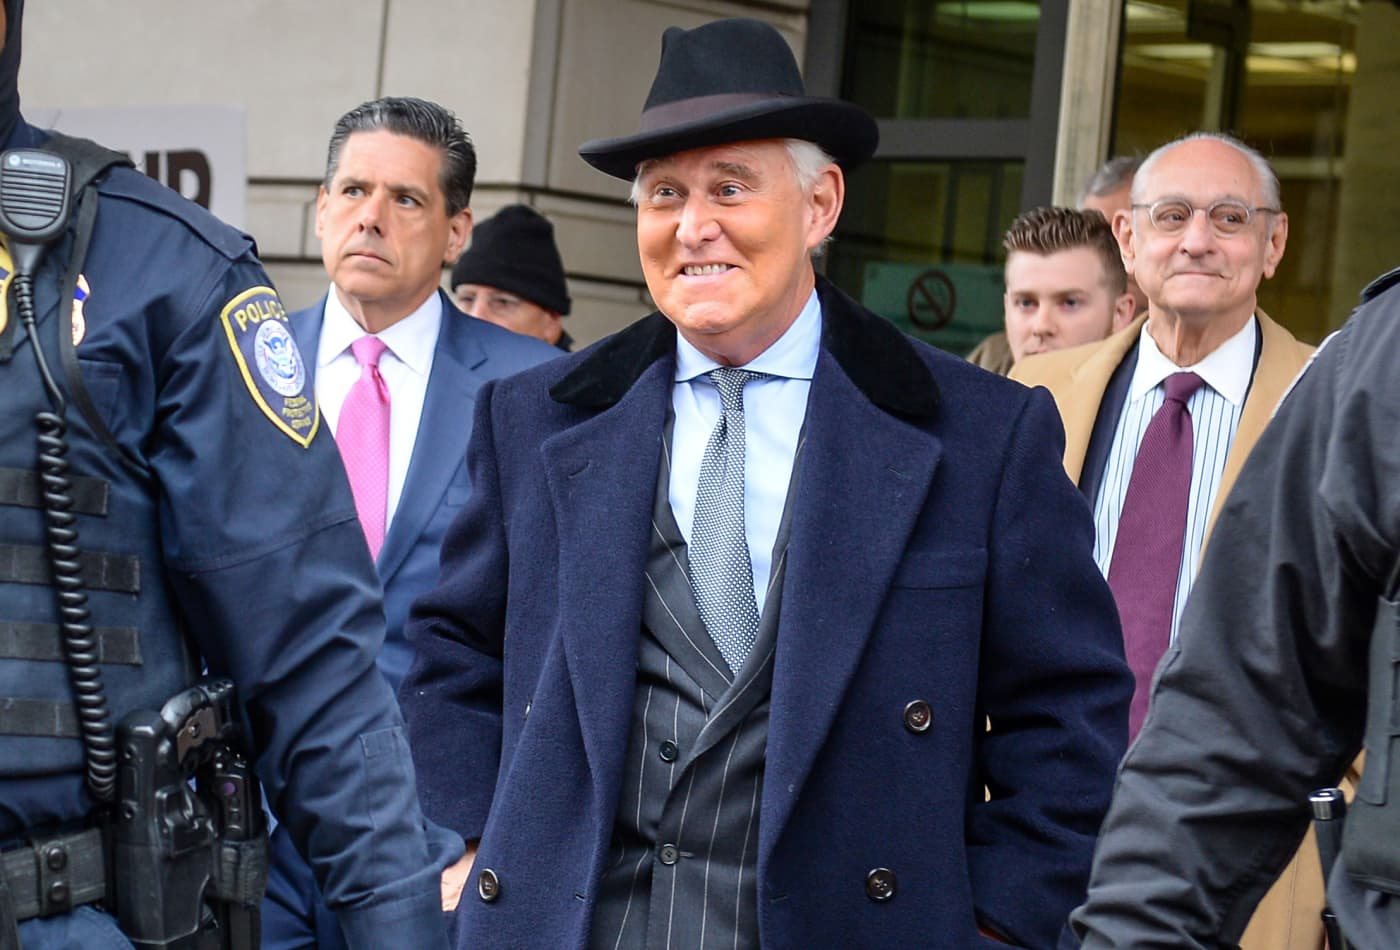 Roger Stone sentenced to over 3 years in prison as judge slams him for 'covering up for' Trump